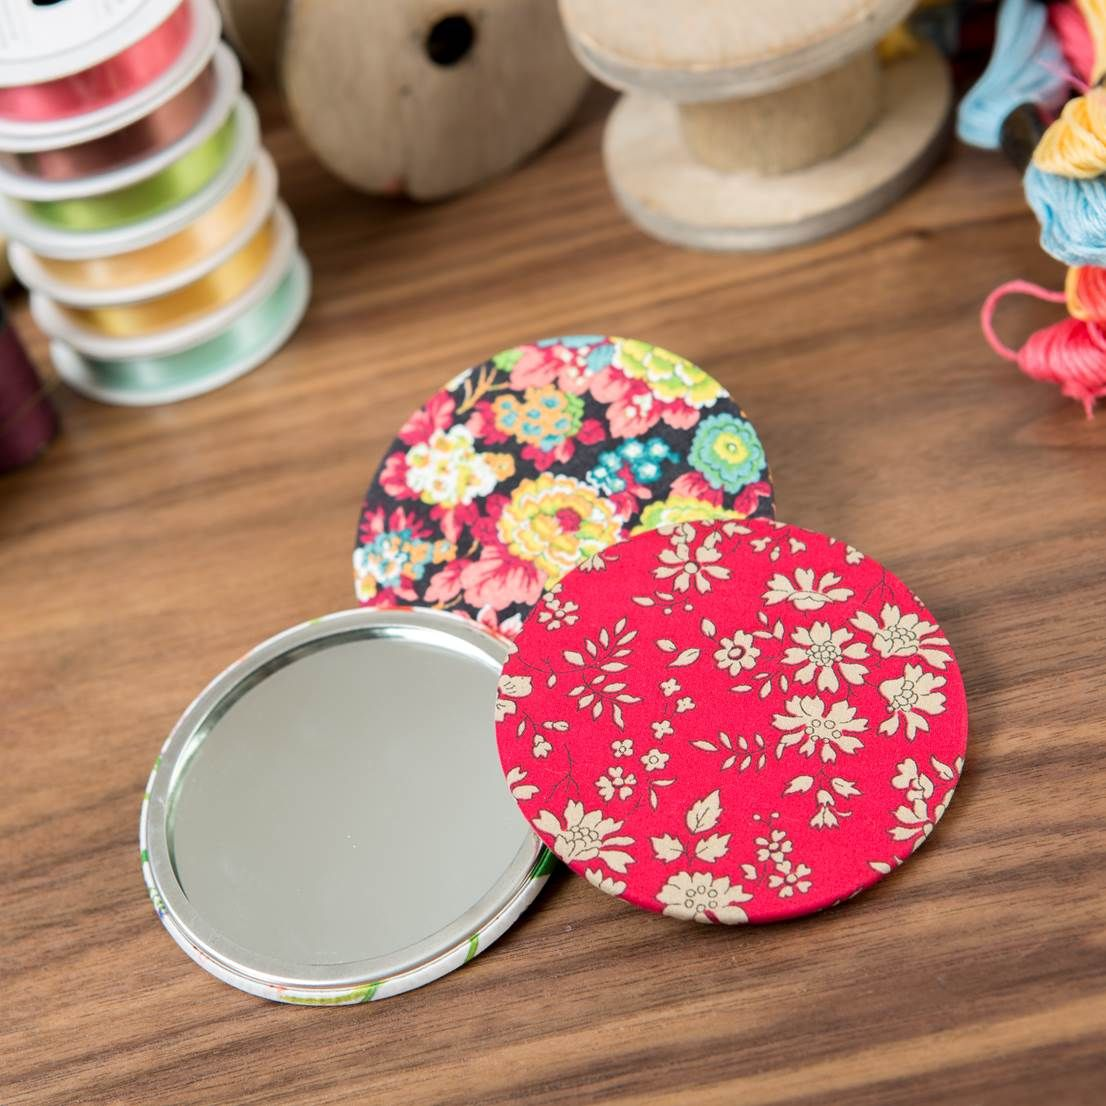 House of Alistair #Fabric Covered #Mirror, available at Create and #Craft! - http://www.createandcraft.tv/House_of_Alistair_Fabric_Covered_Mirror-330714.aspx?fh_location=//CreateAndCraft/en_GB/$s=house%20of%20alistair #accessories #sewing